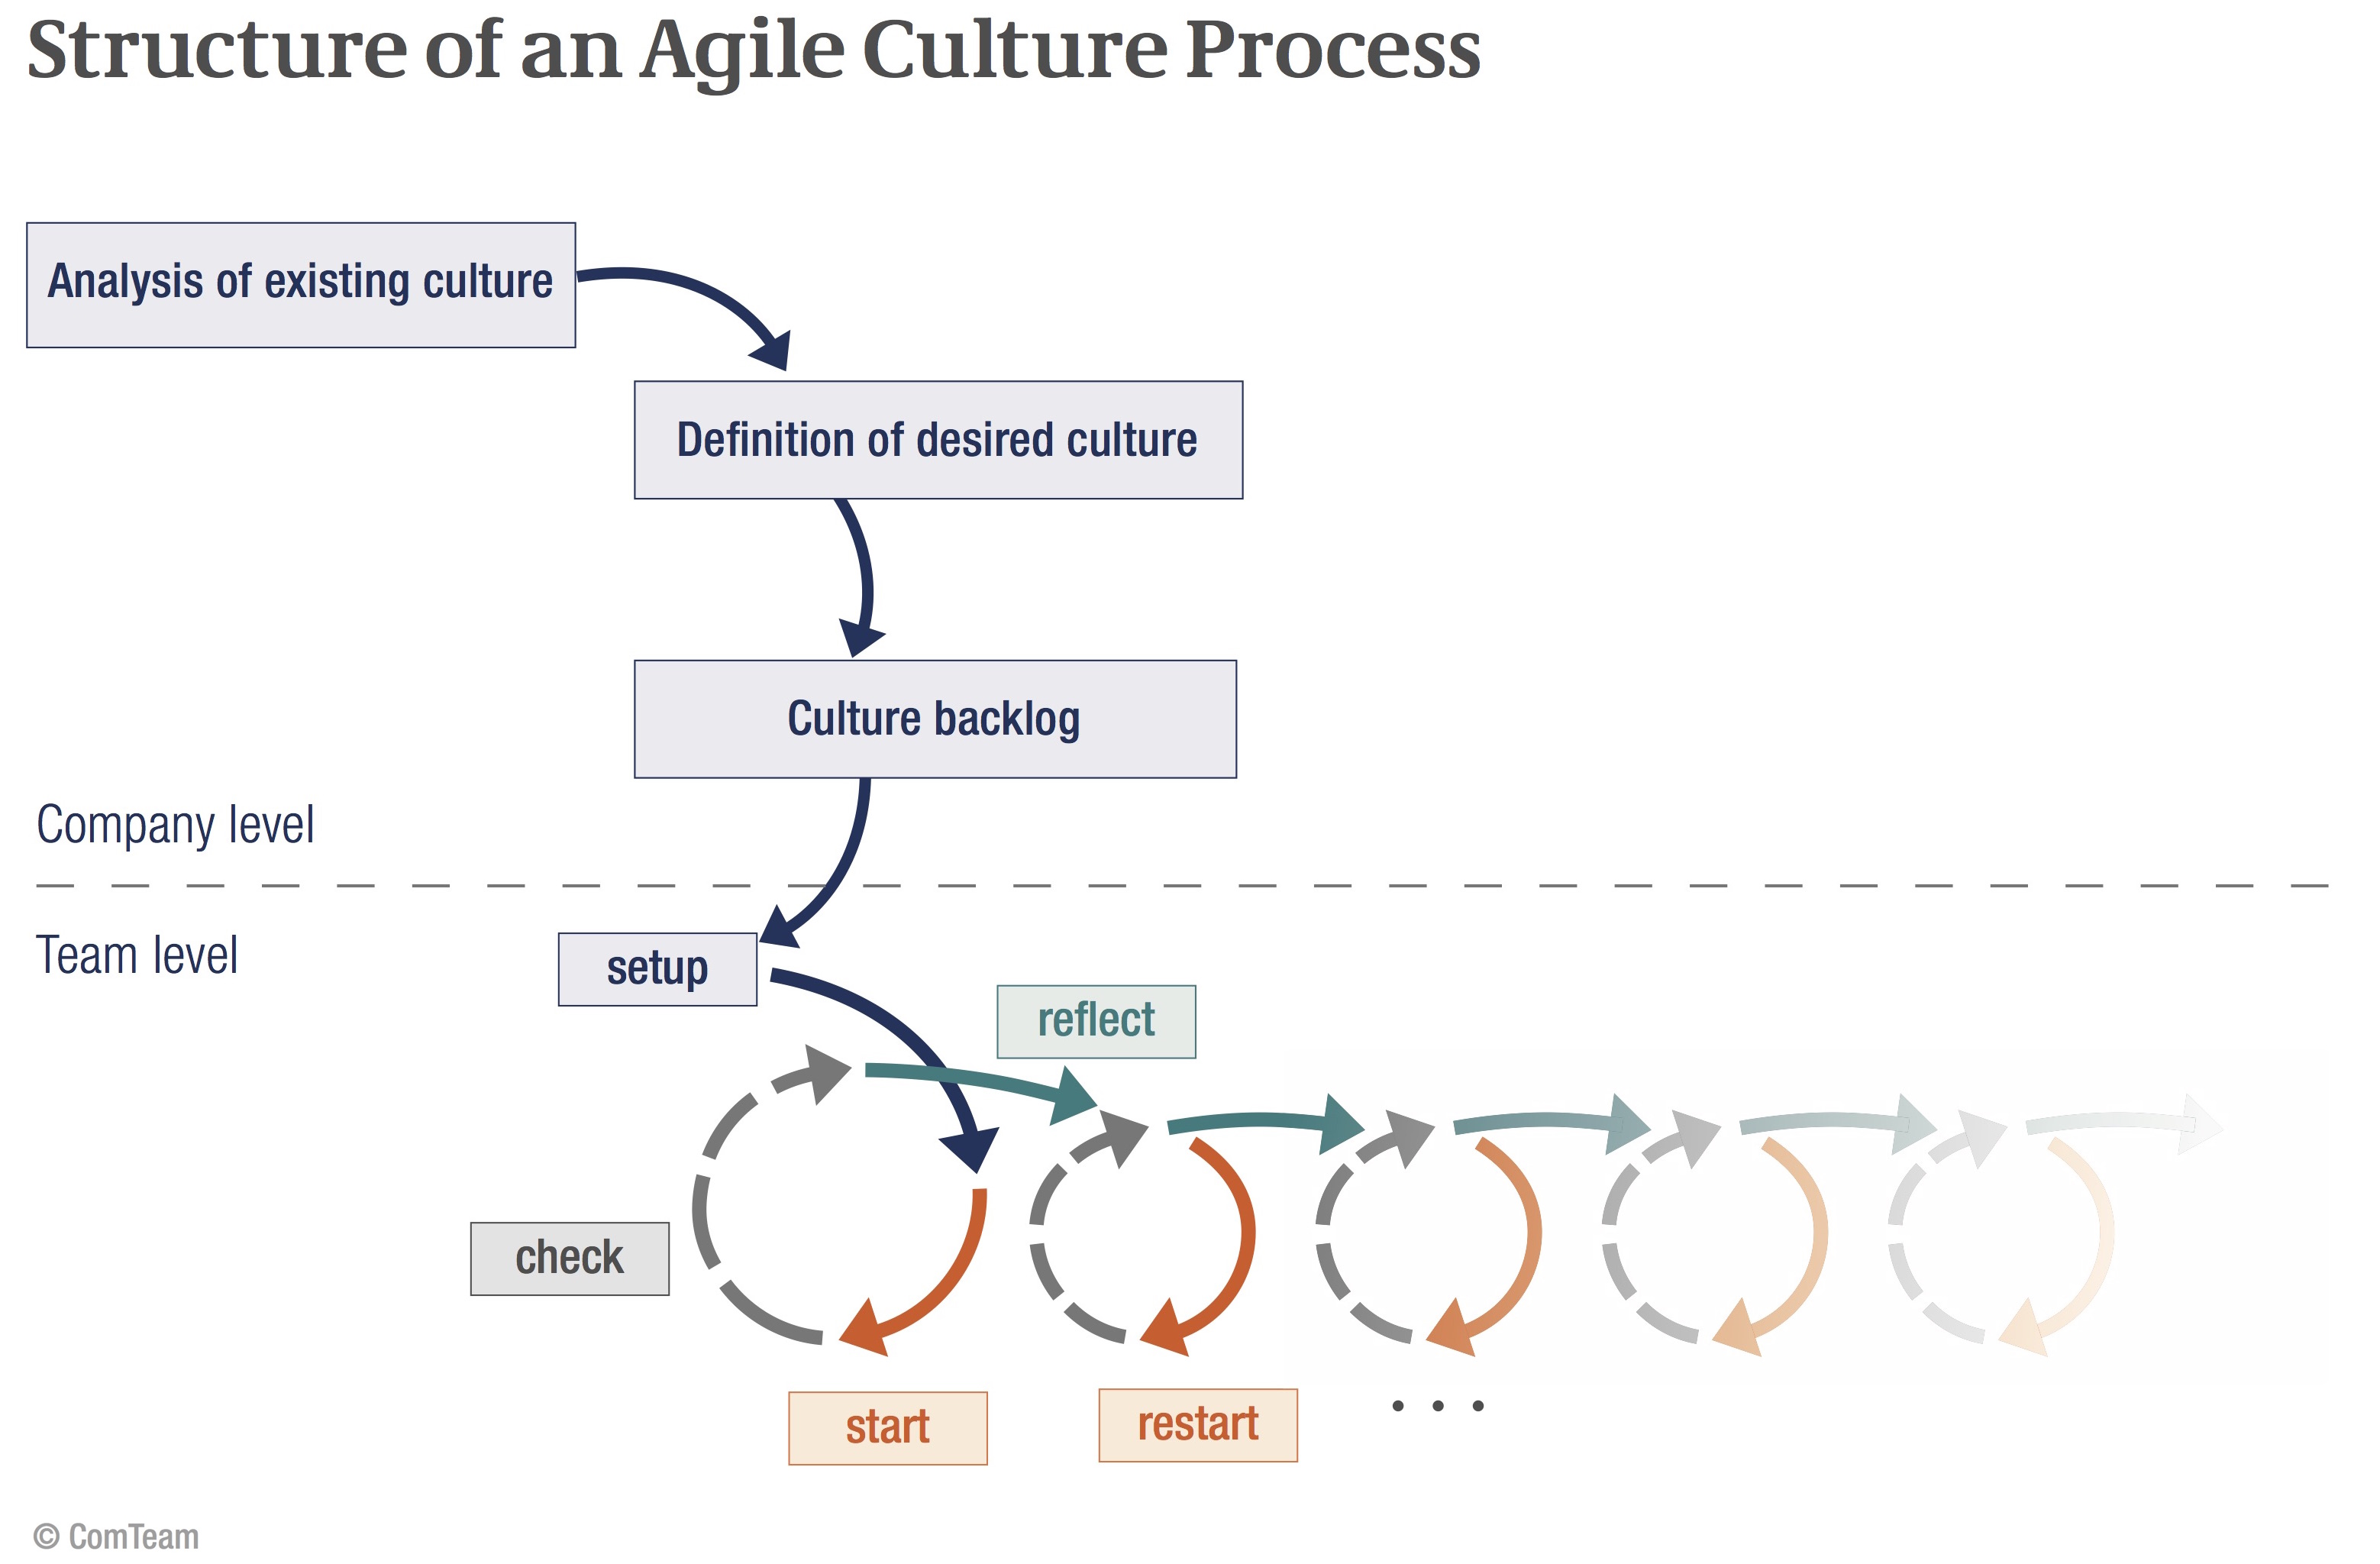 Agiler kulturprozess comteam group procedure our agile cultural process provides the blueprint malvernweather Image collections